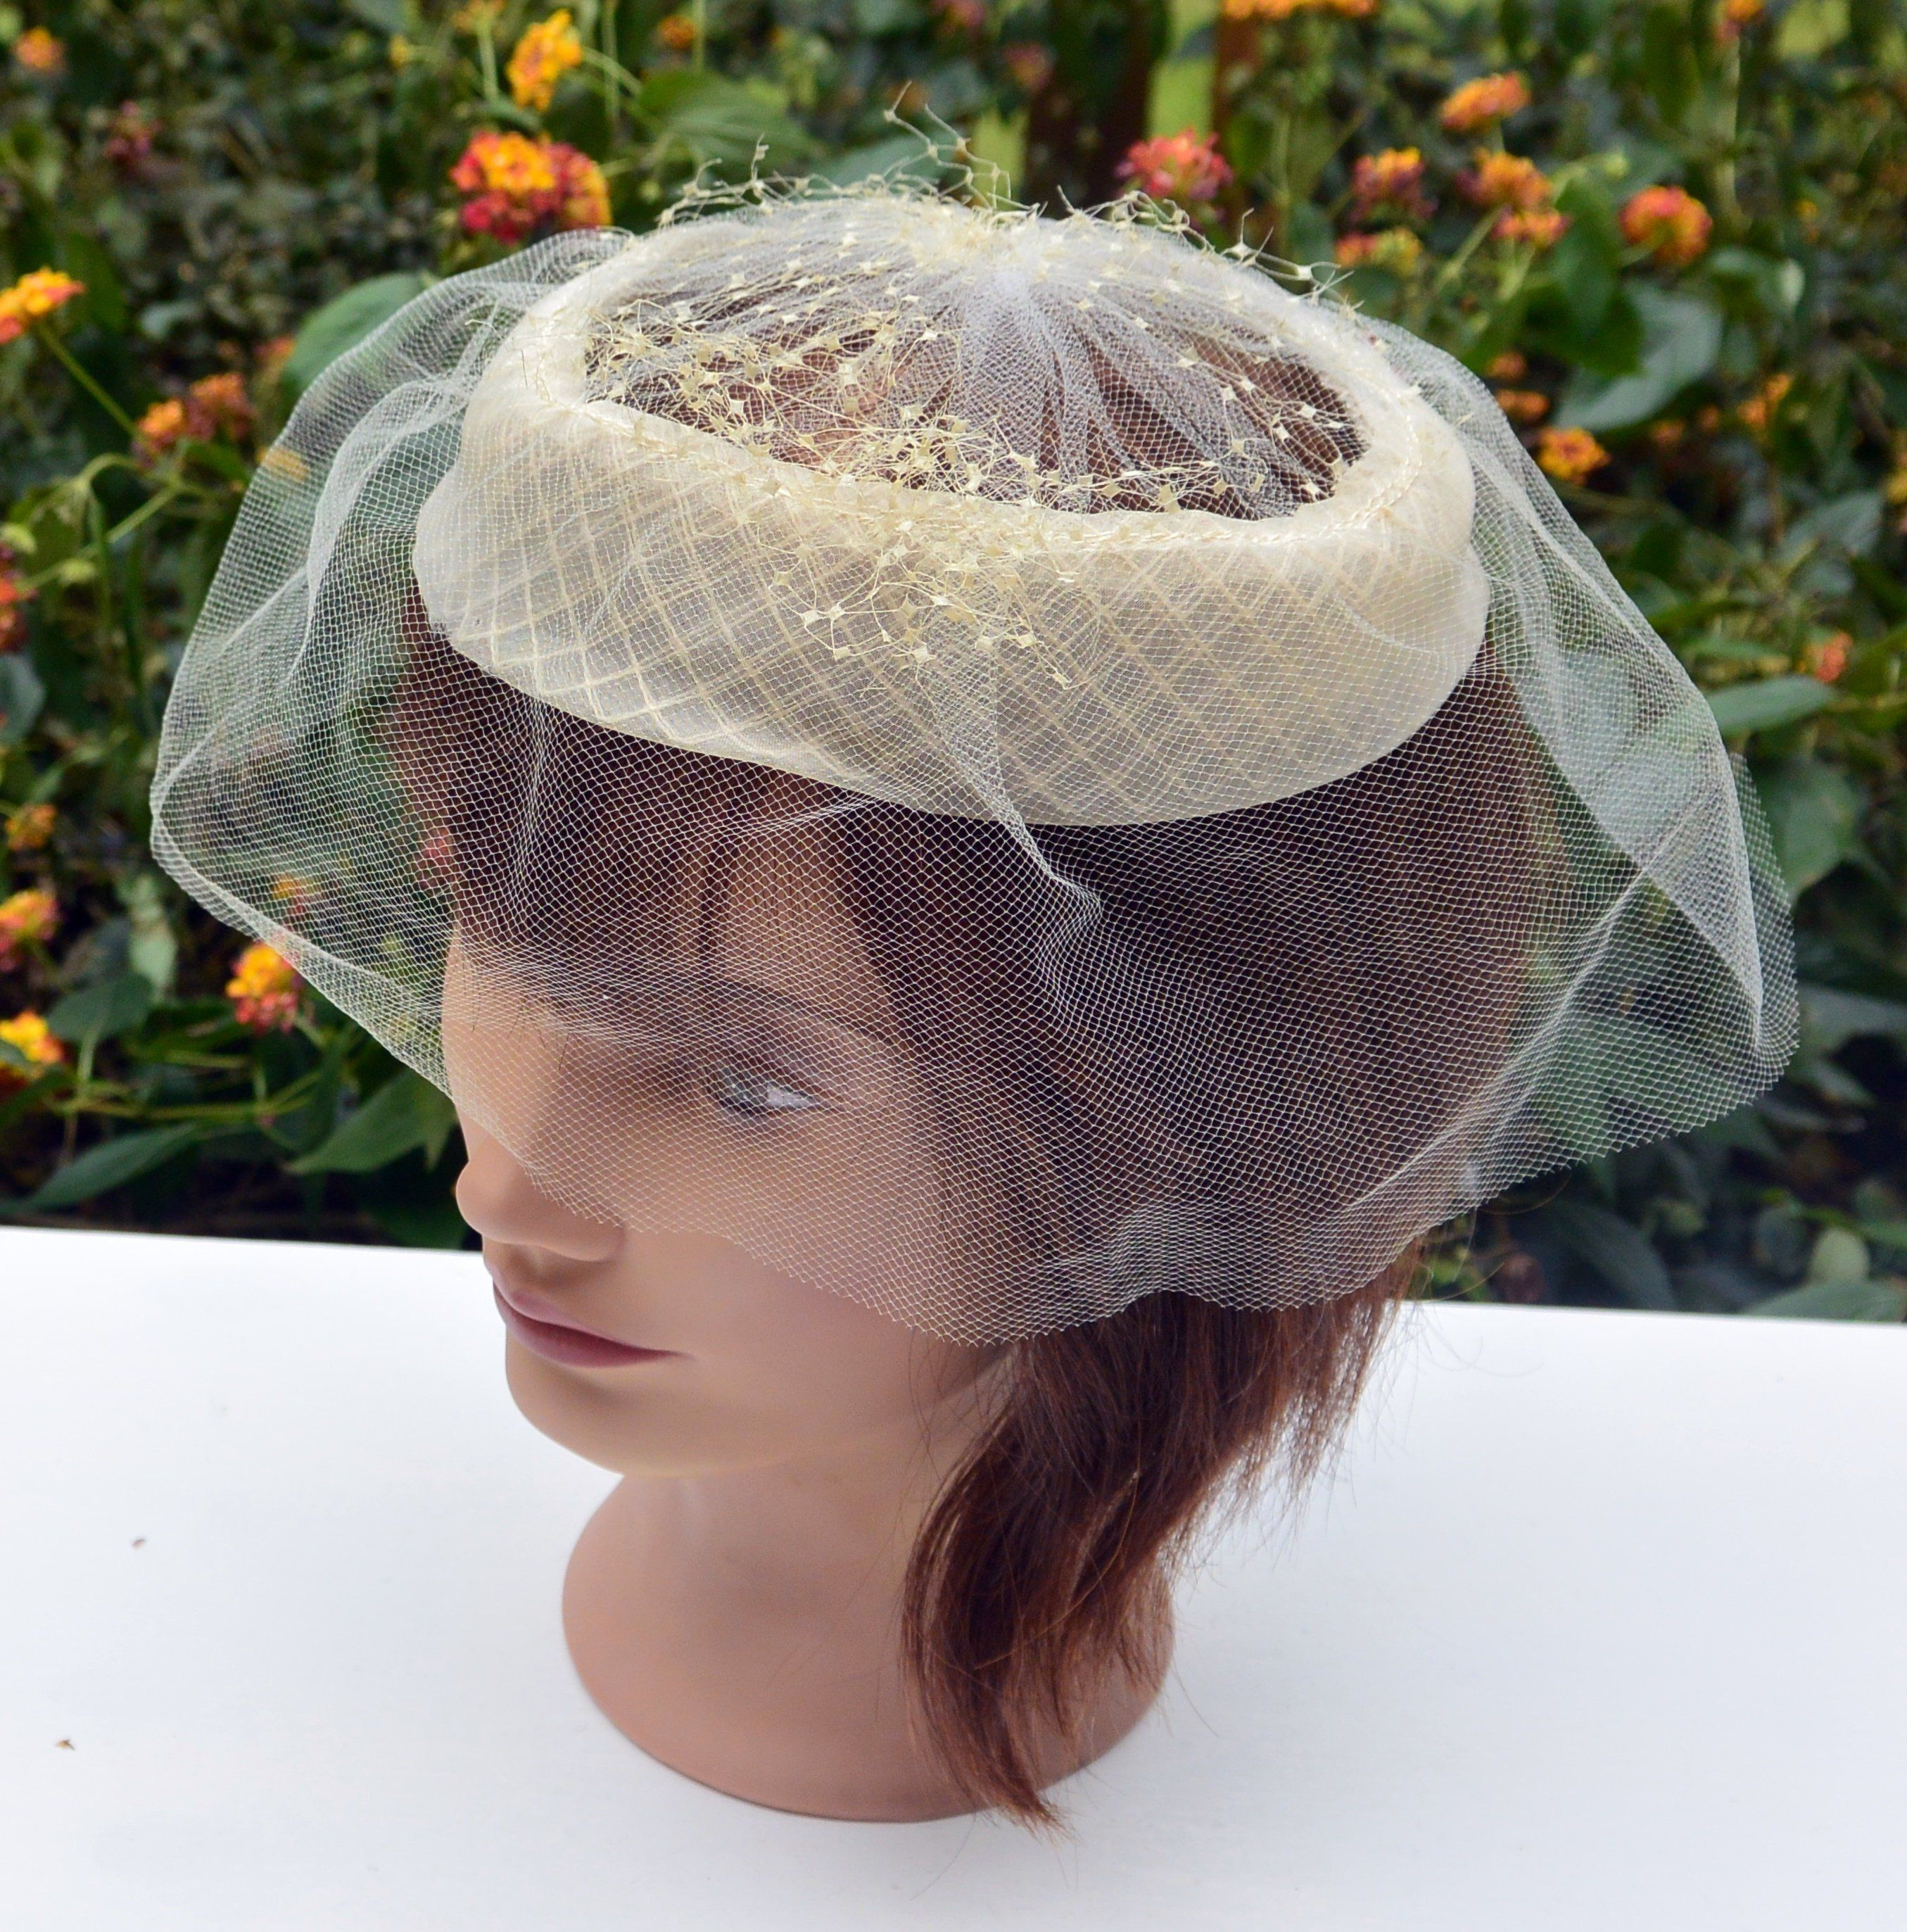 Beautiful Vintage Pillbox Hat With Fur Bow Body Made In Italy Vintage Ladies Hat